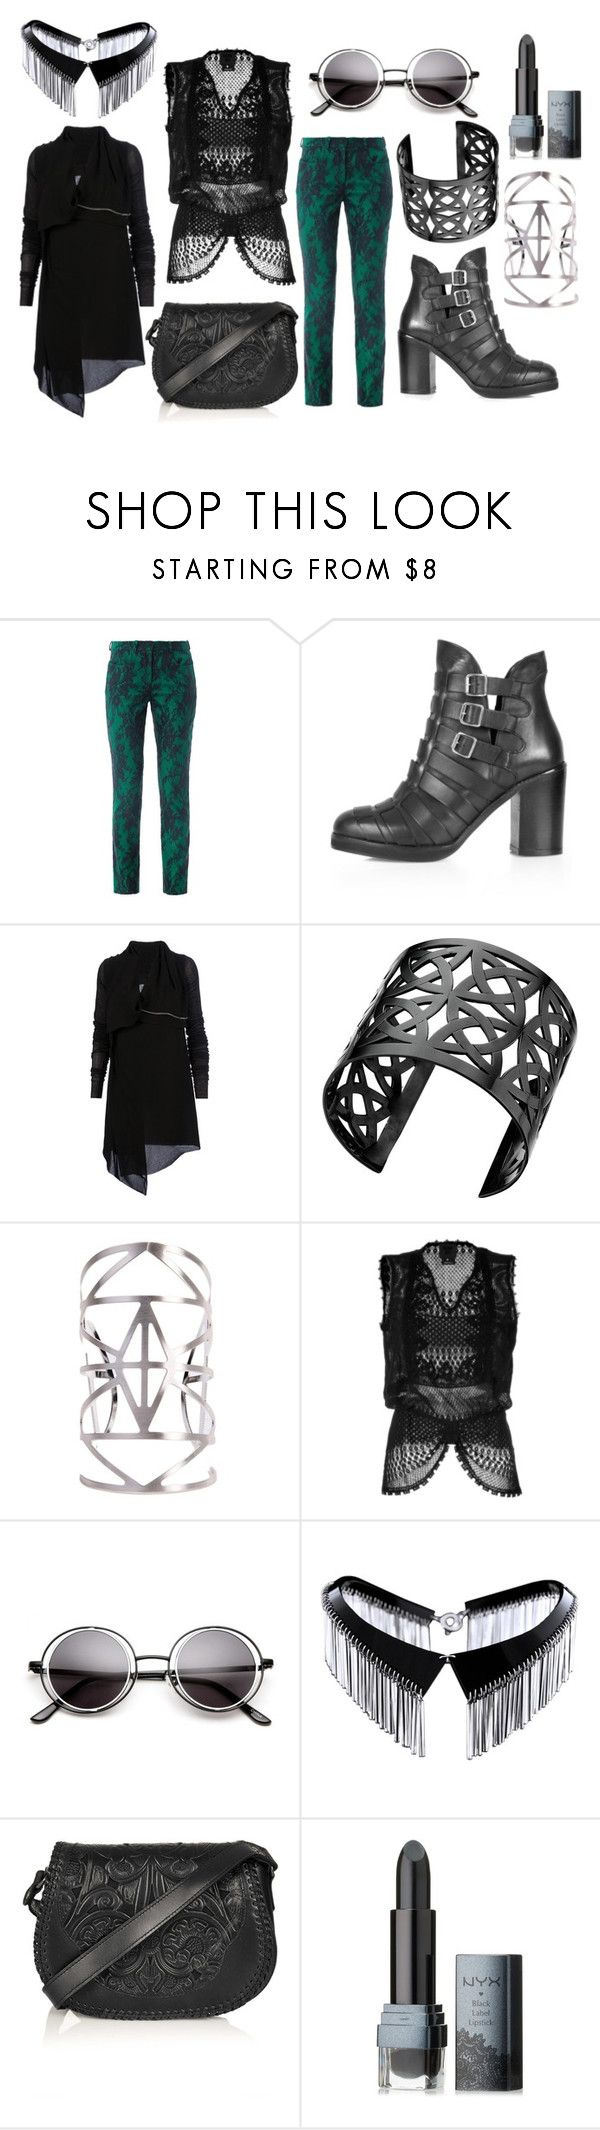 """Tomorrow Will Never Come"" by pennydreadful27 ❤ liked on Polyvore featuring Erdem, Topshop, Rick Owens, Lynn Ban, Akira, Anna Sui, Zelia Horsley and NYX"